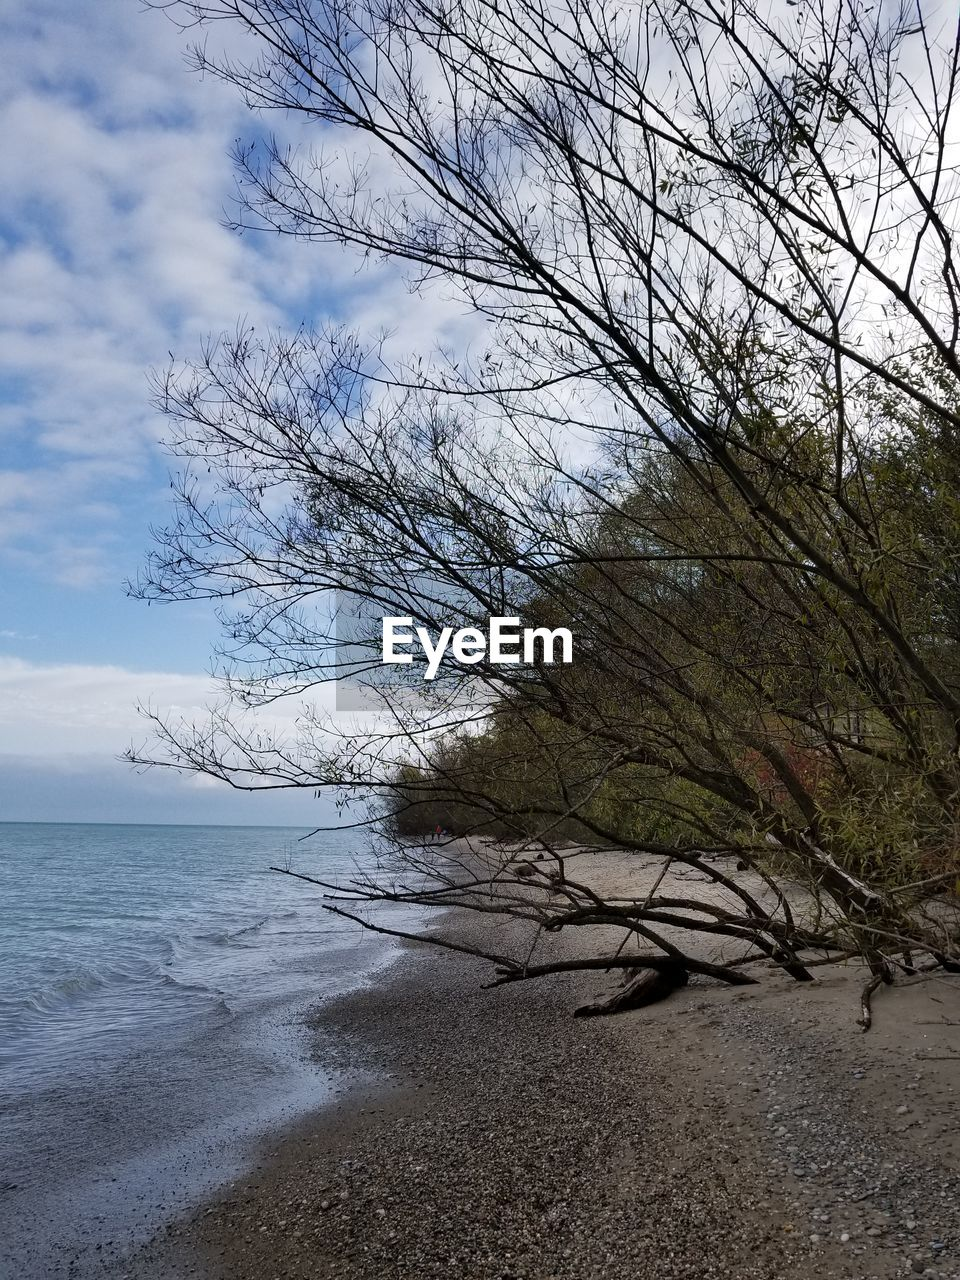 nature, tranquility, beauty in nature, tranquil scene, scenics, bare tree, sky, tree, sea, no people, outdoors, day, branch, water, landscape, horizon over water, beach